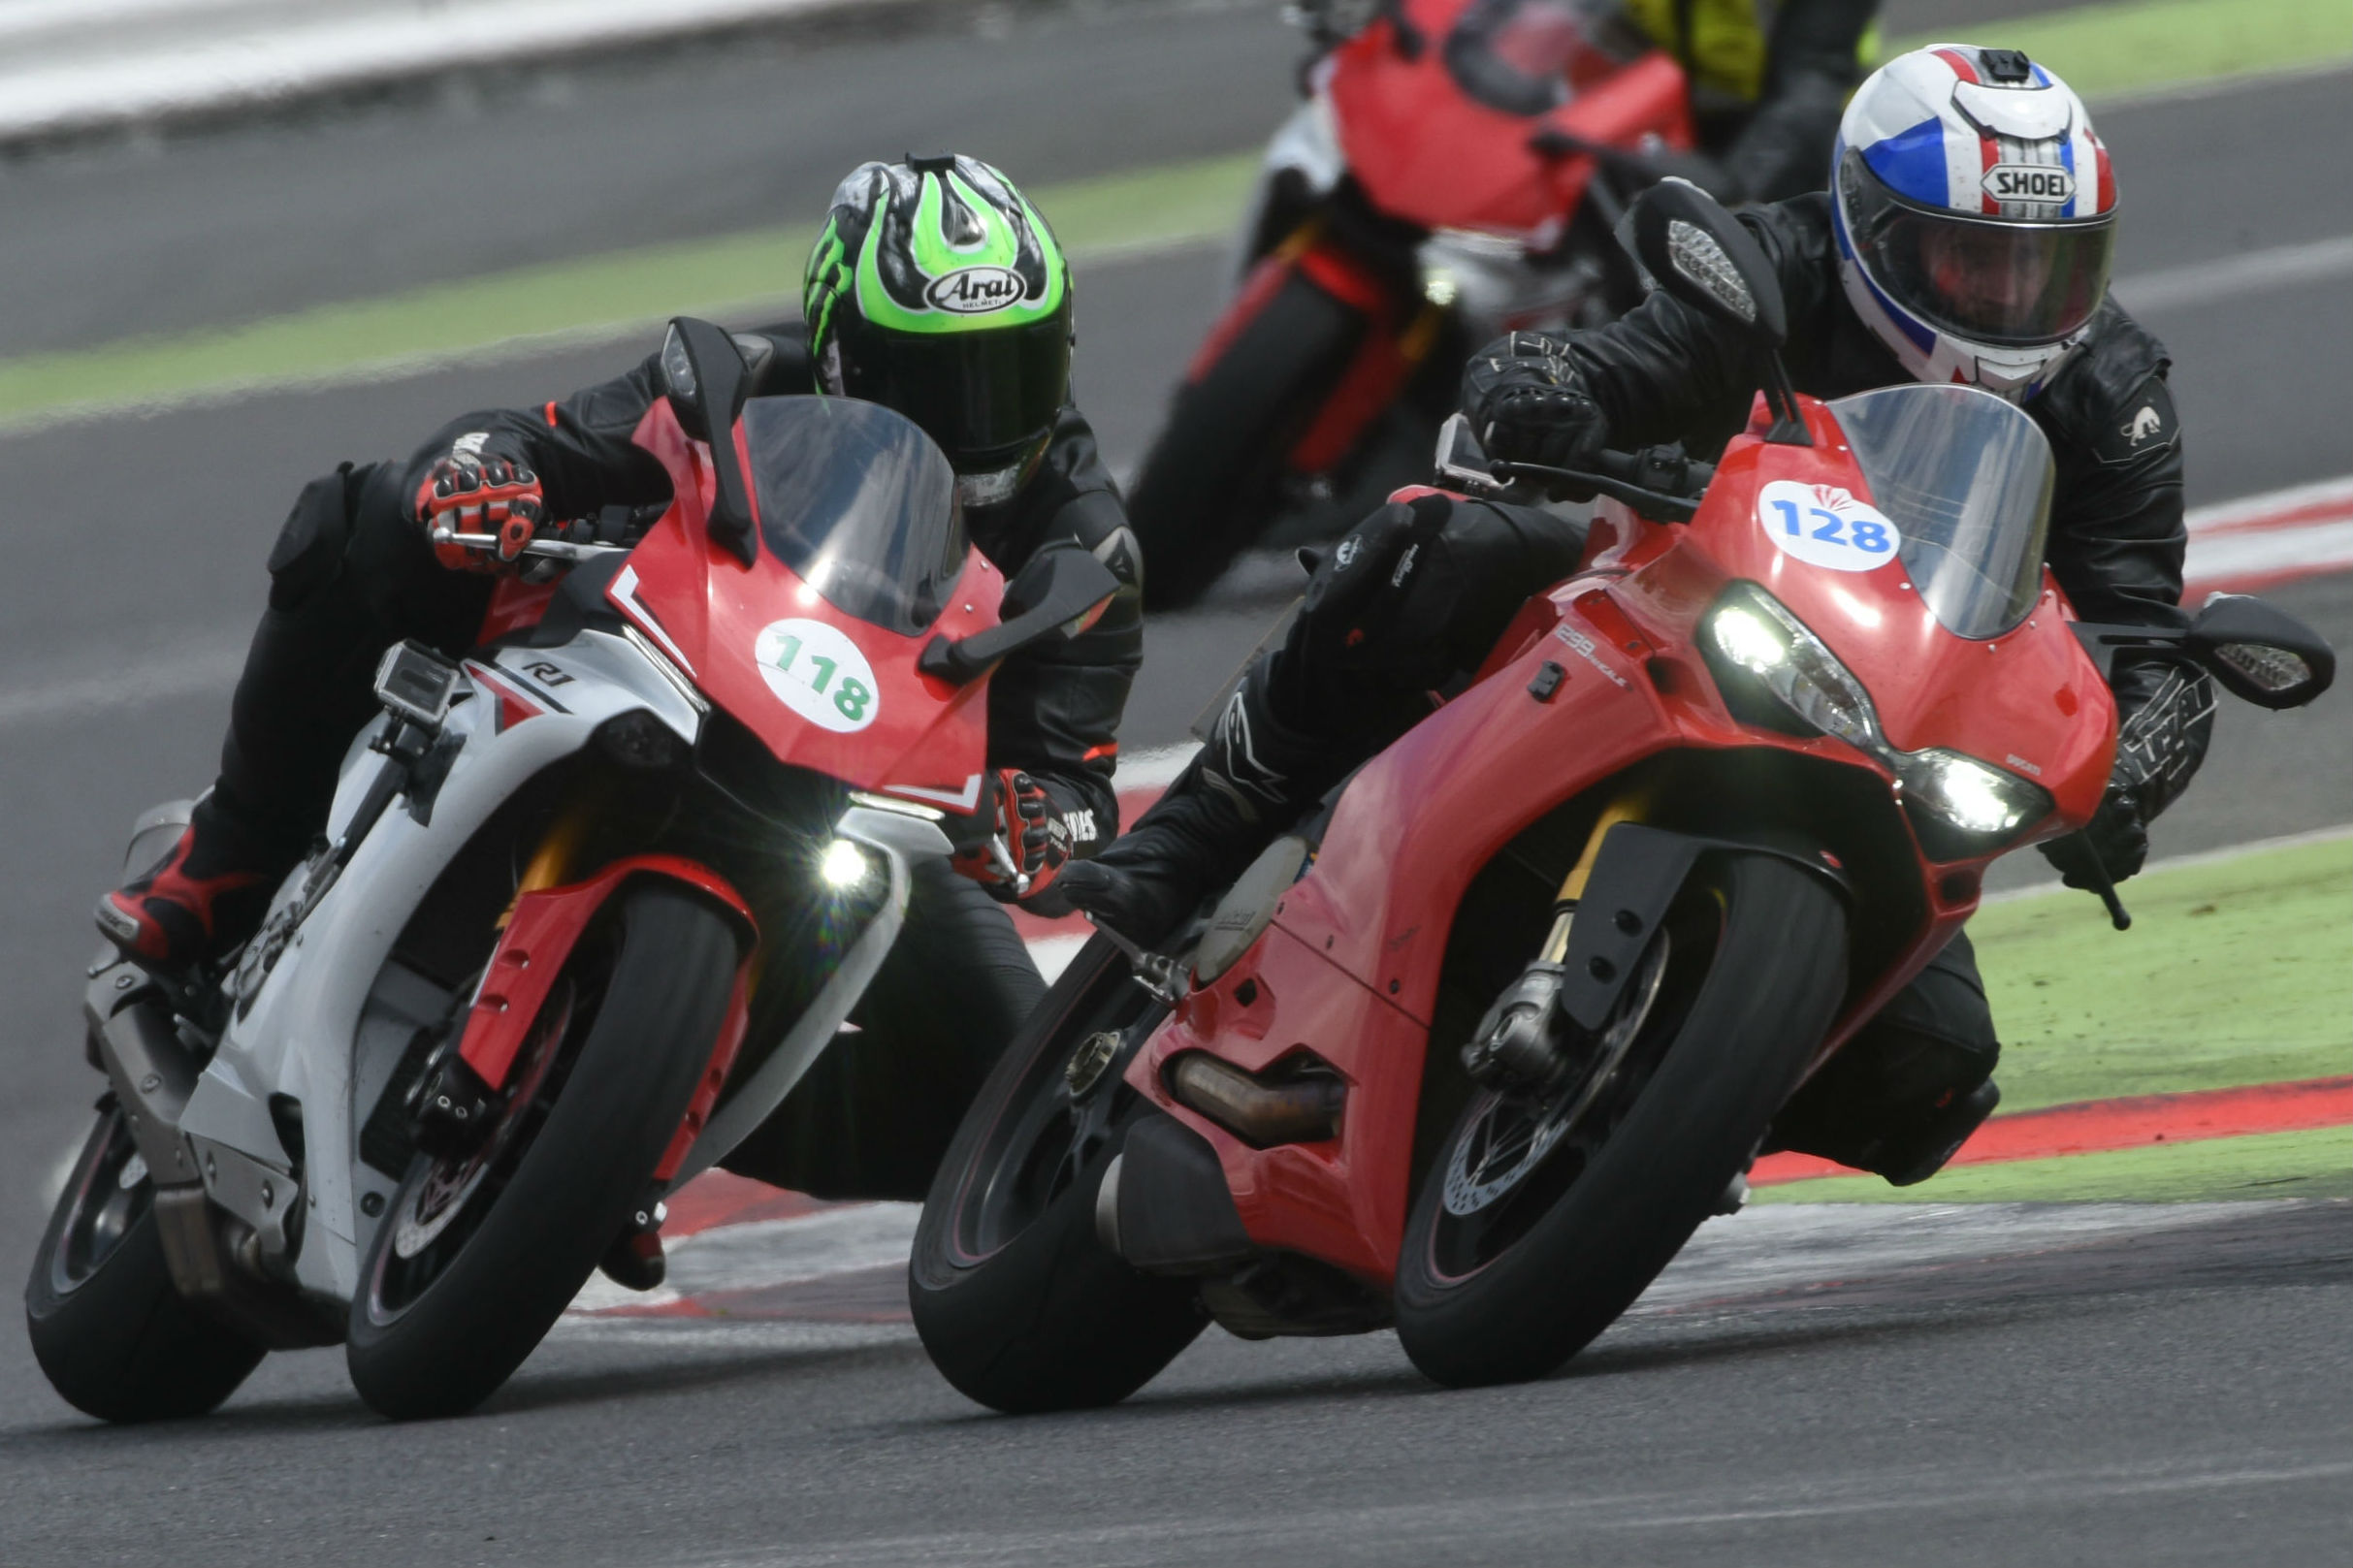 CONTINUE READING OUR YAMAHA R1 VS DUCATI 1299 PANIGALE S REVIEW